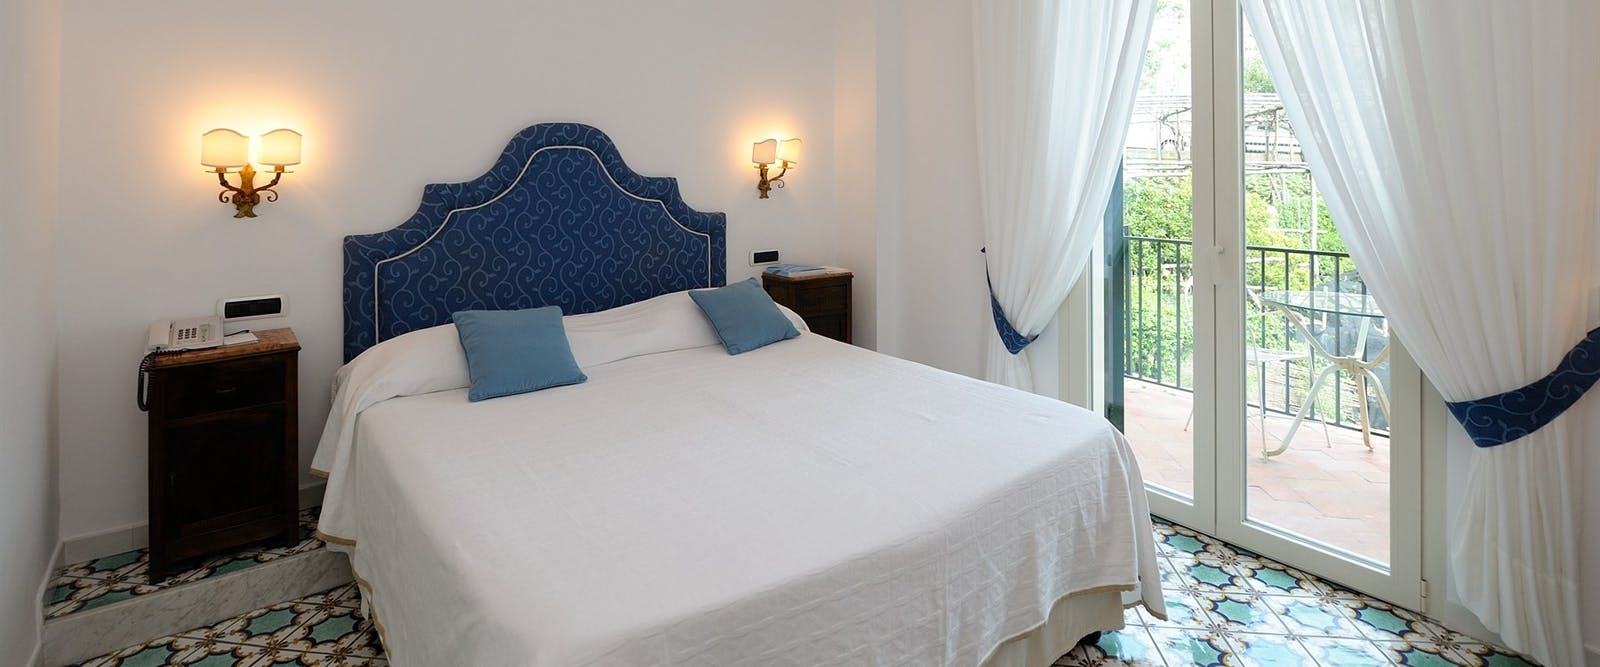 Standard Double Room at Hotel Santa Caterina, Amalfi Coast, Italy